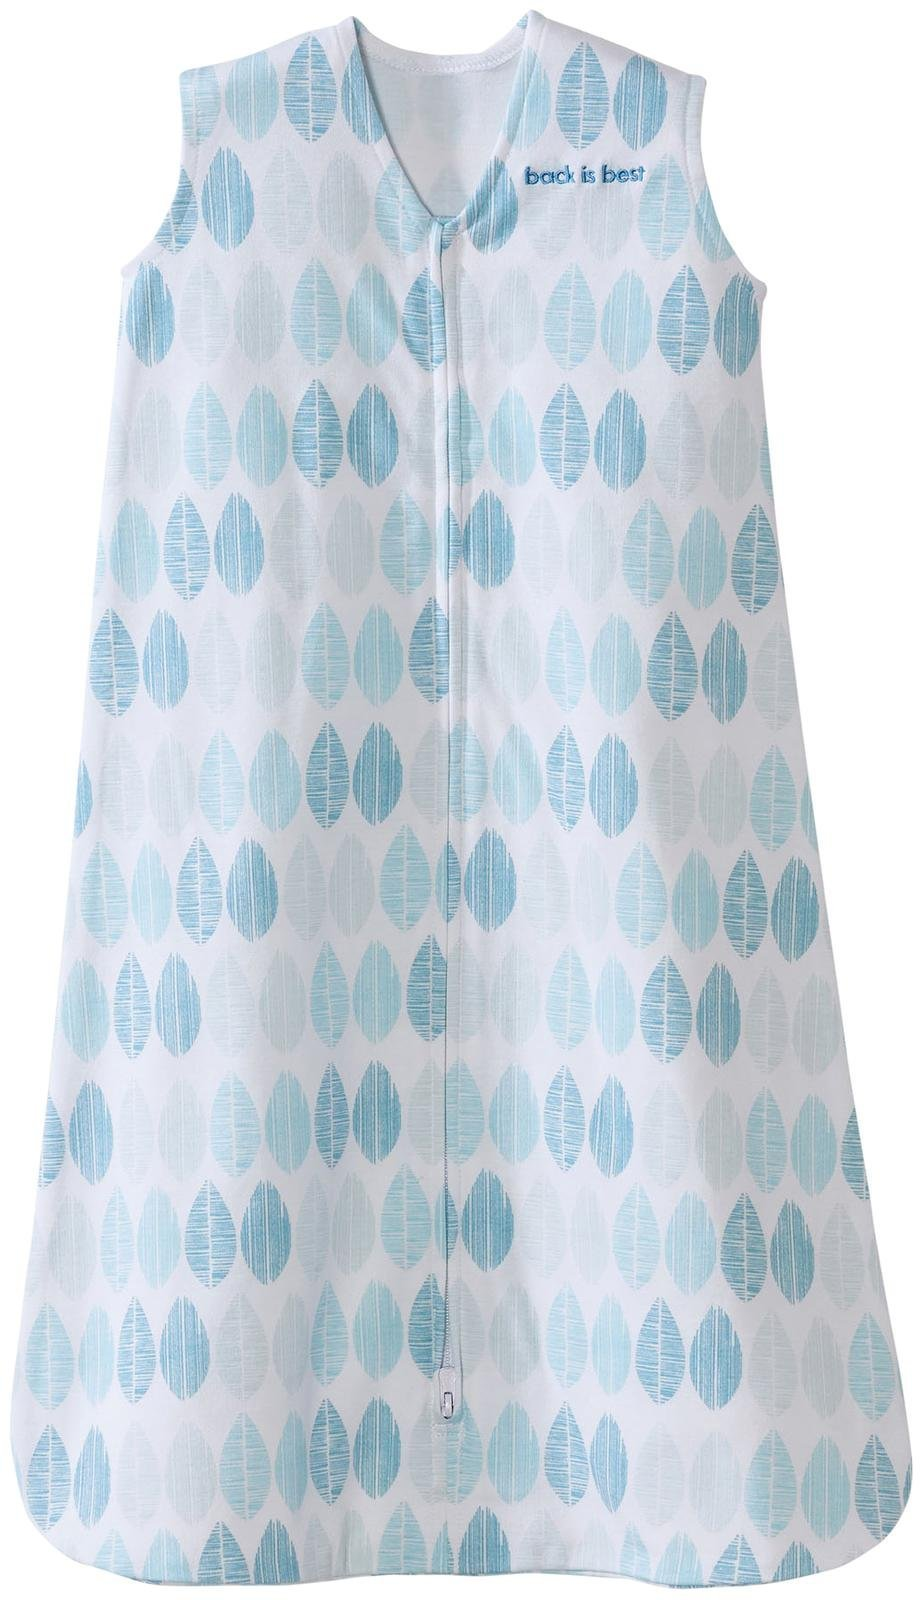 Halo Sleepsack, 100% Cotton, Fossil Aqua, Large